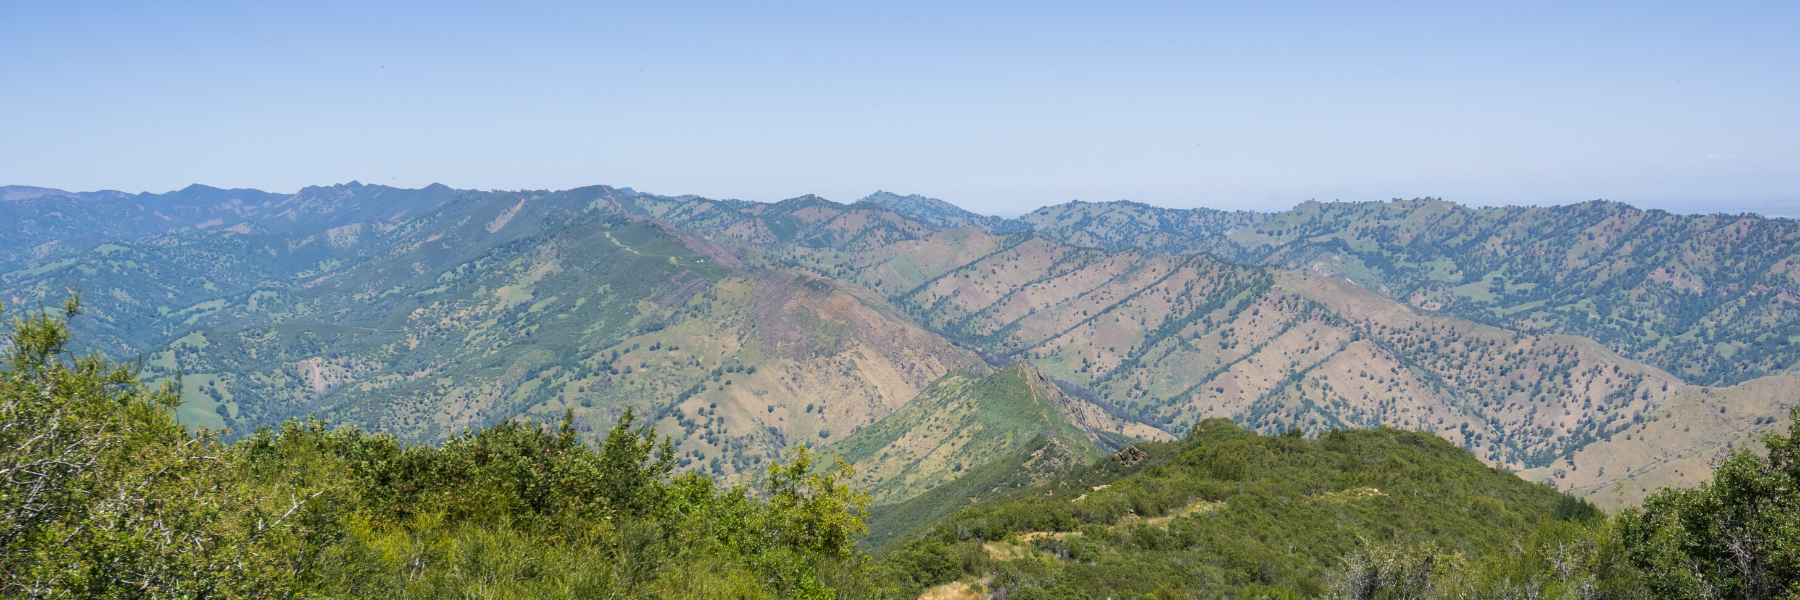 Napa Valley Mountains feature several Napa Hiking Trails